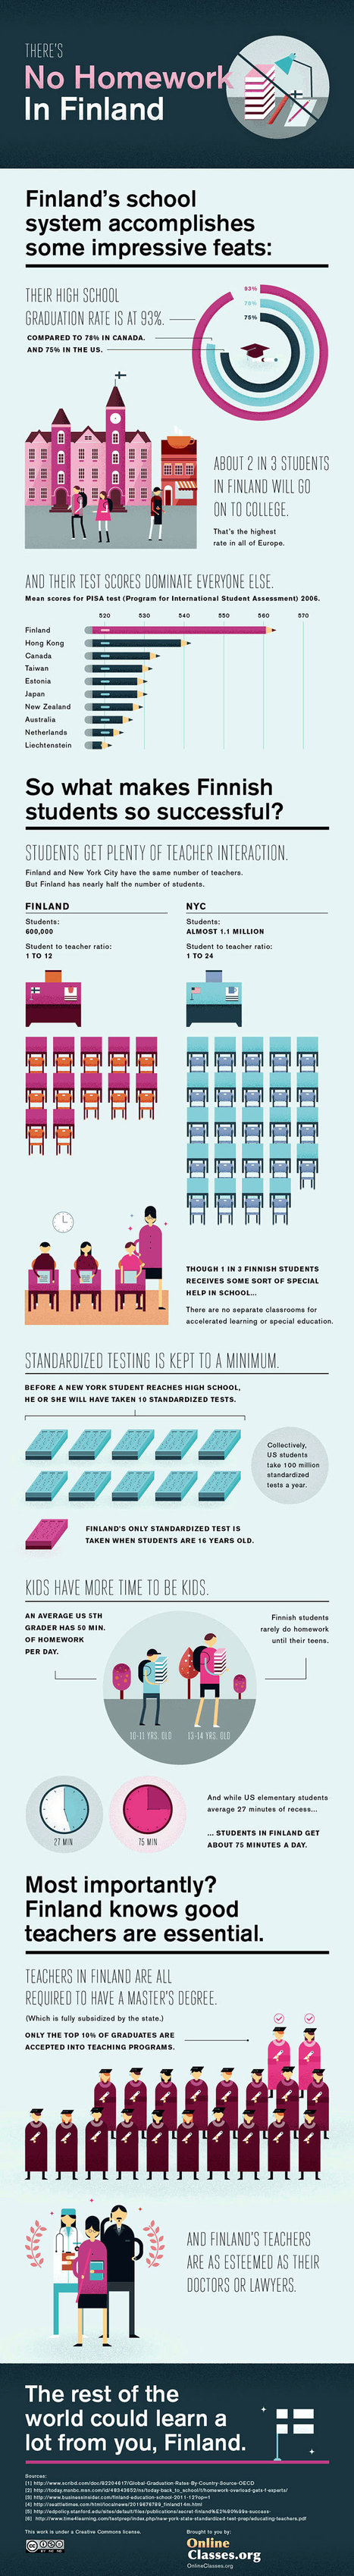 Finland's School System - Infographic | Education3.0 | Scoop.it